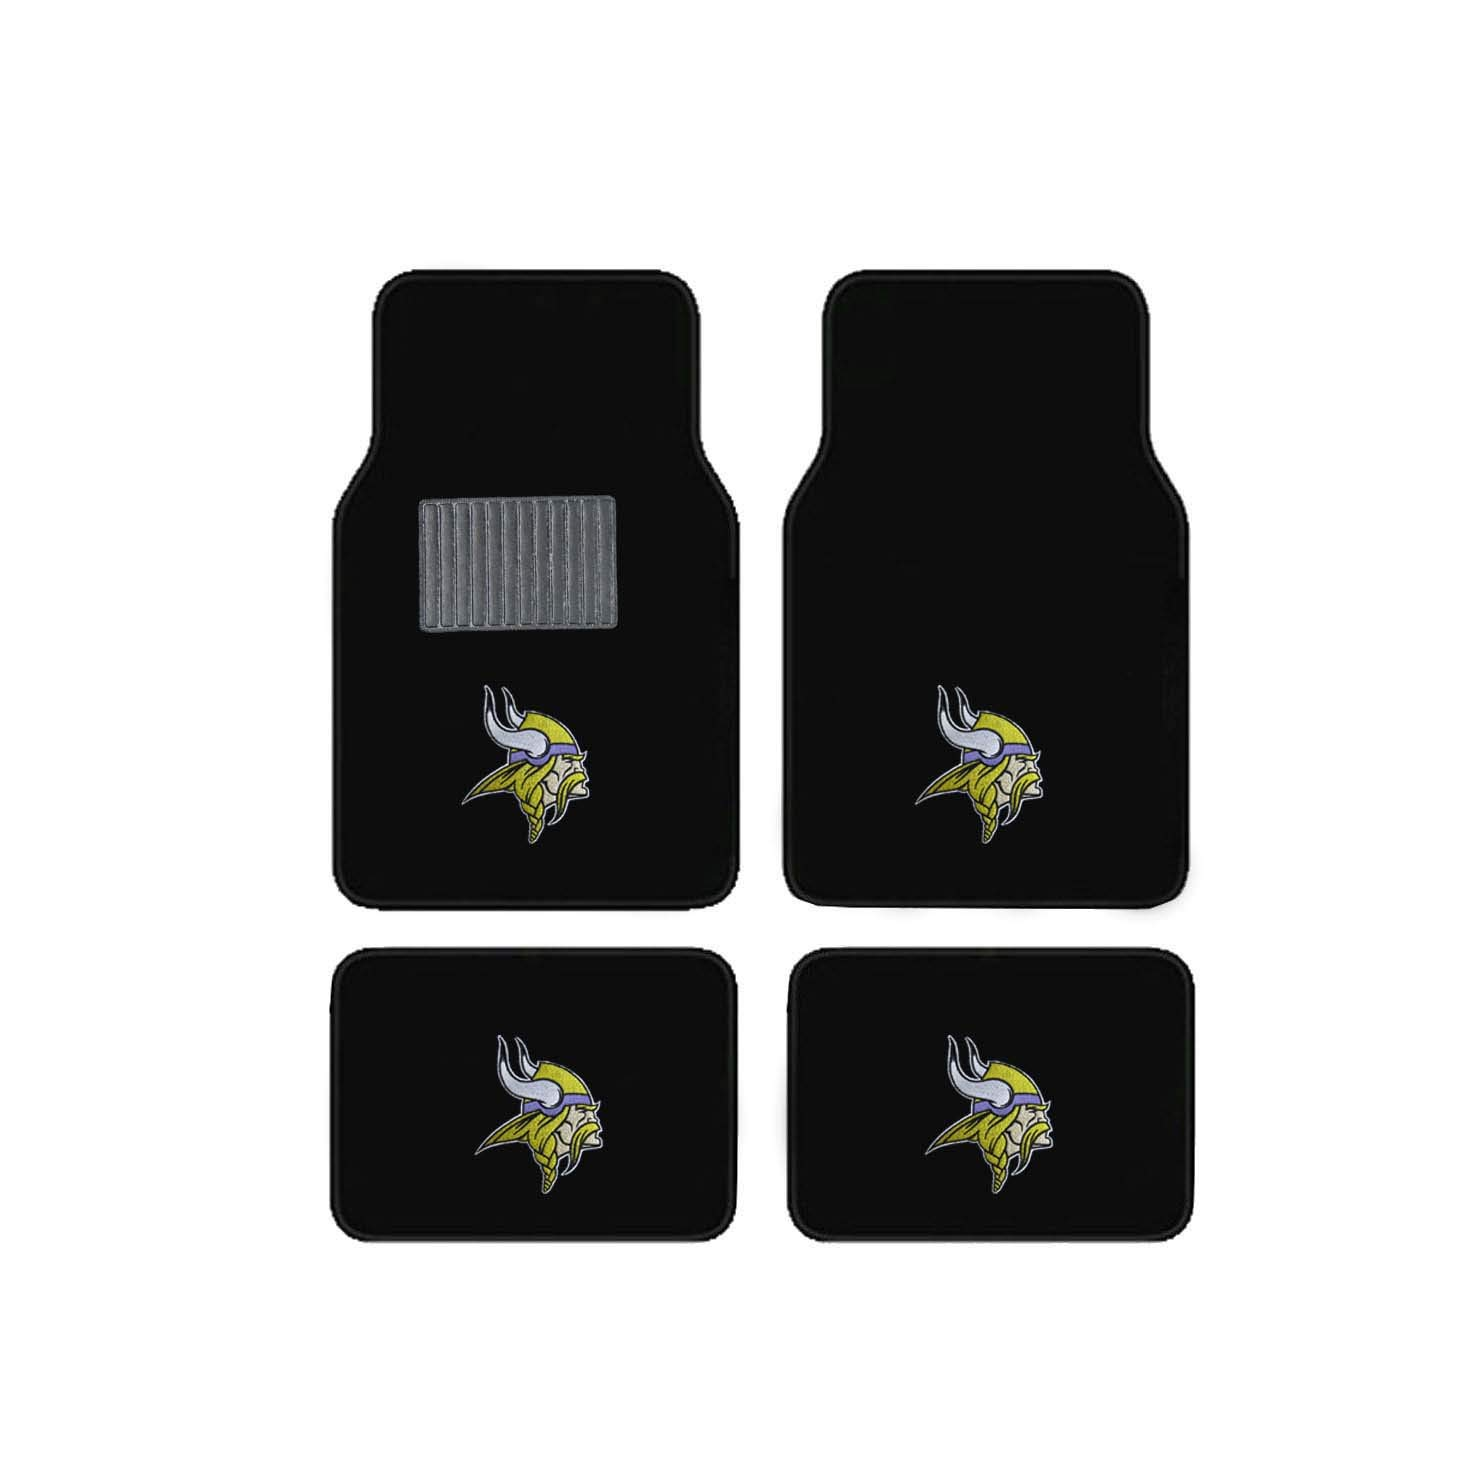 Newly Released Licensed Minnesota Vikings Embroidered Logo Carpet Floor Mats. Wow Logo on All 4 Mats. Sports Licensing Solutions